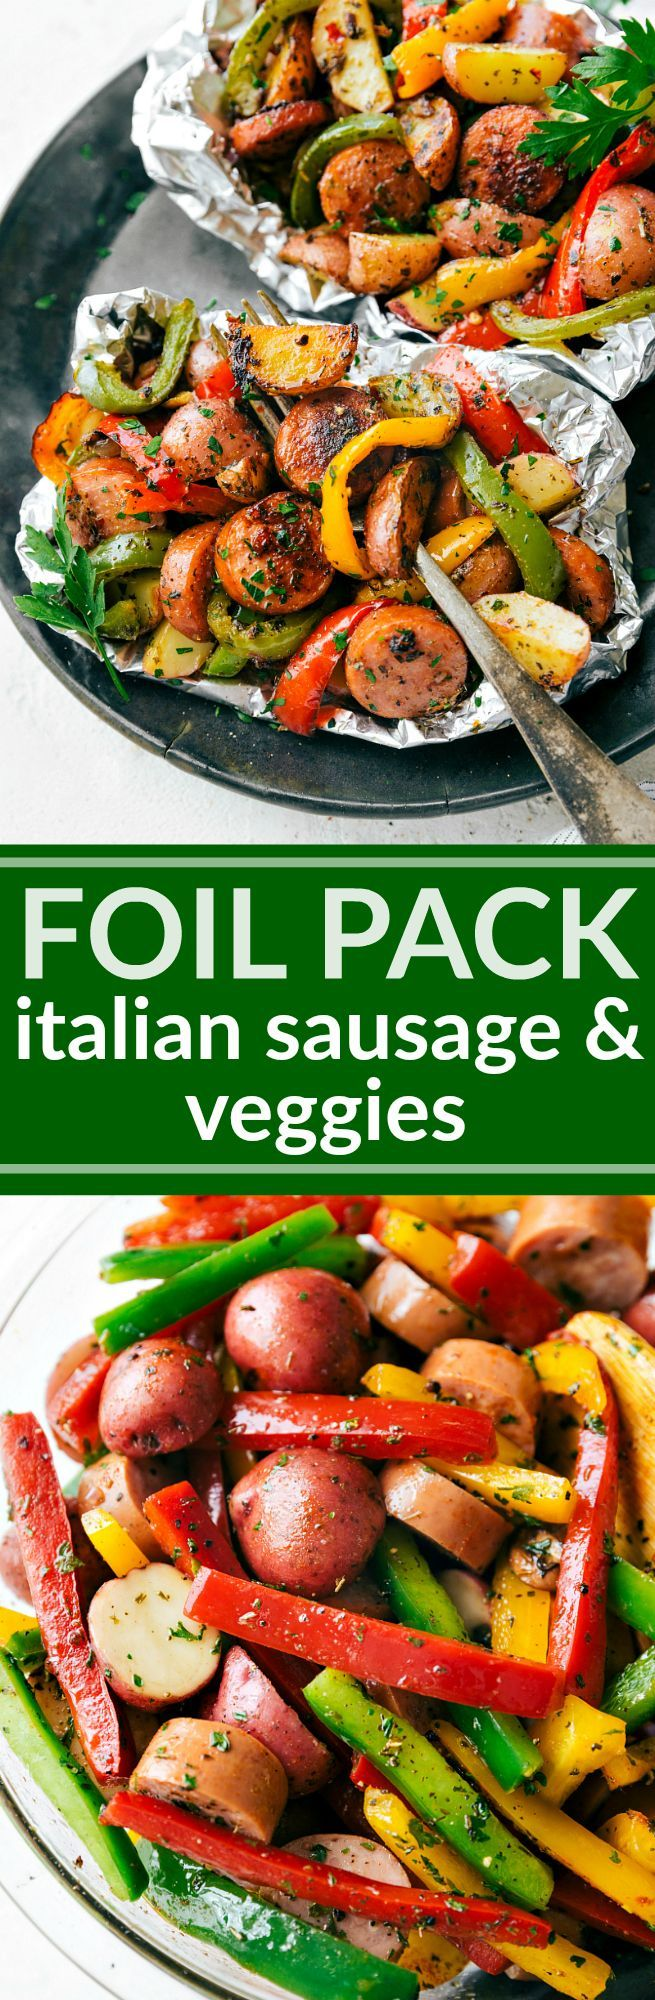 Easy Tin Foil Italian Sausage And Veggies!!! A Great Outdoor Grill Or  Camping